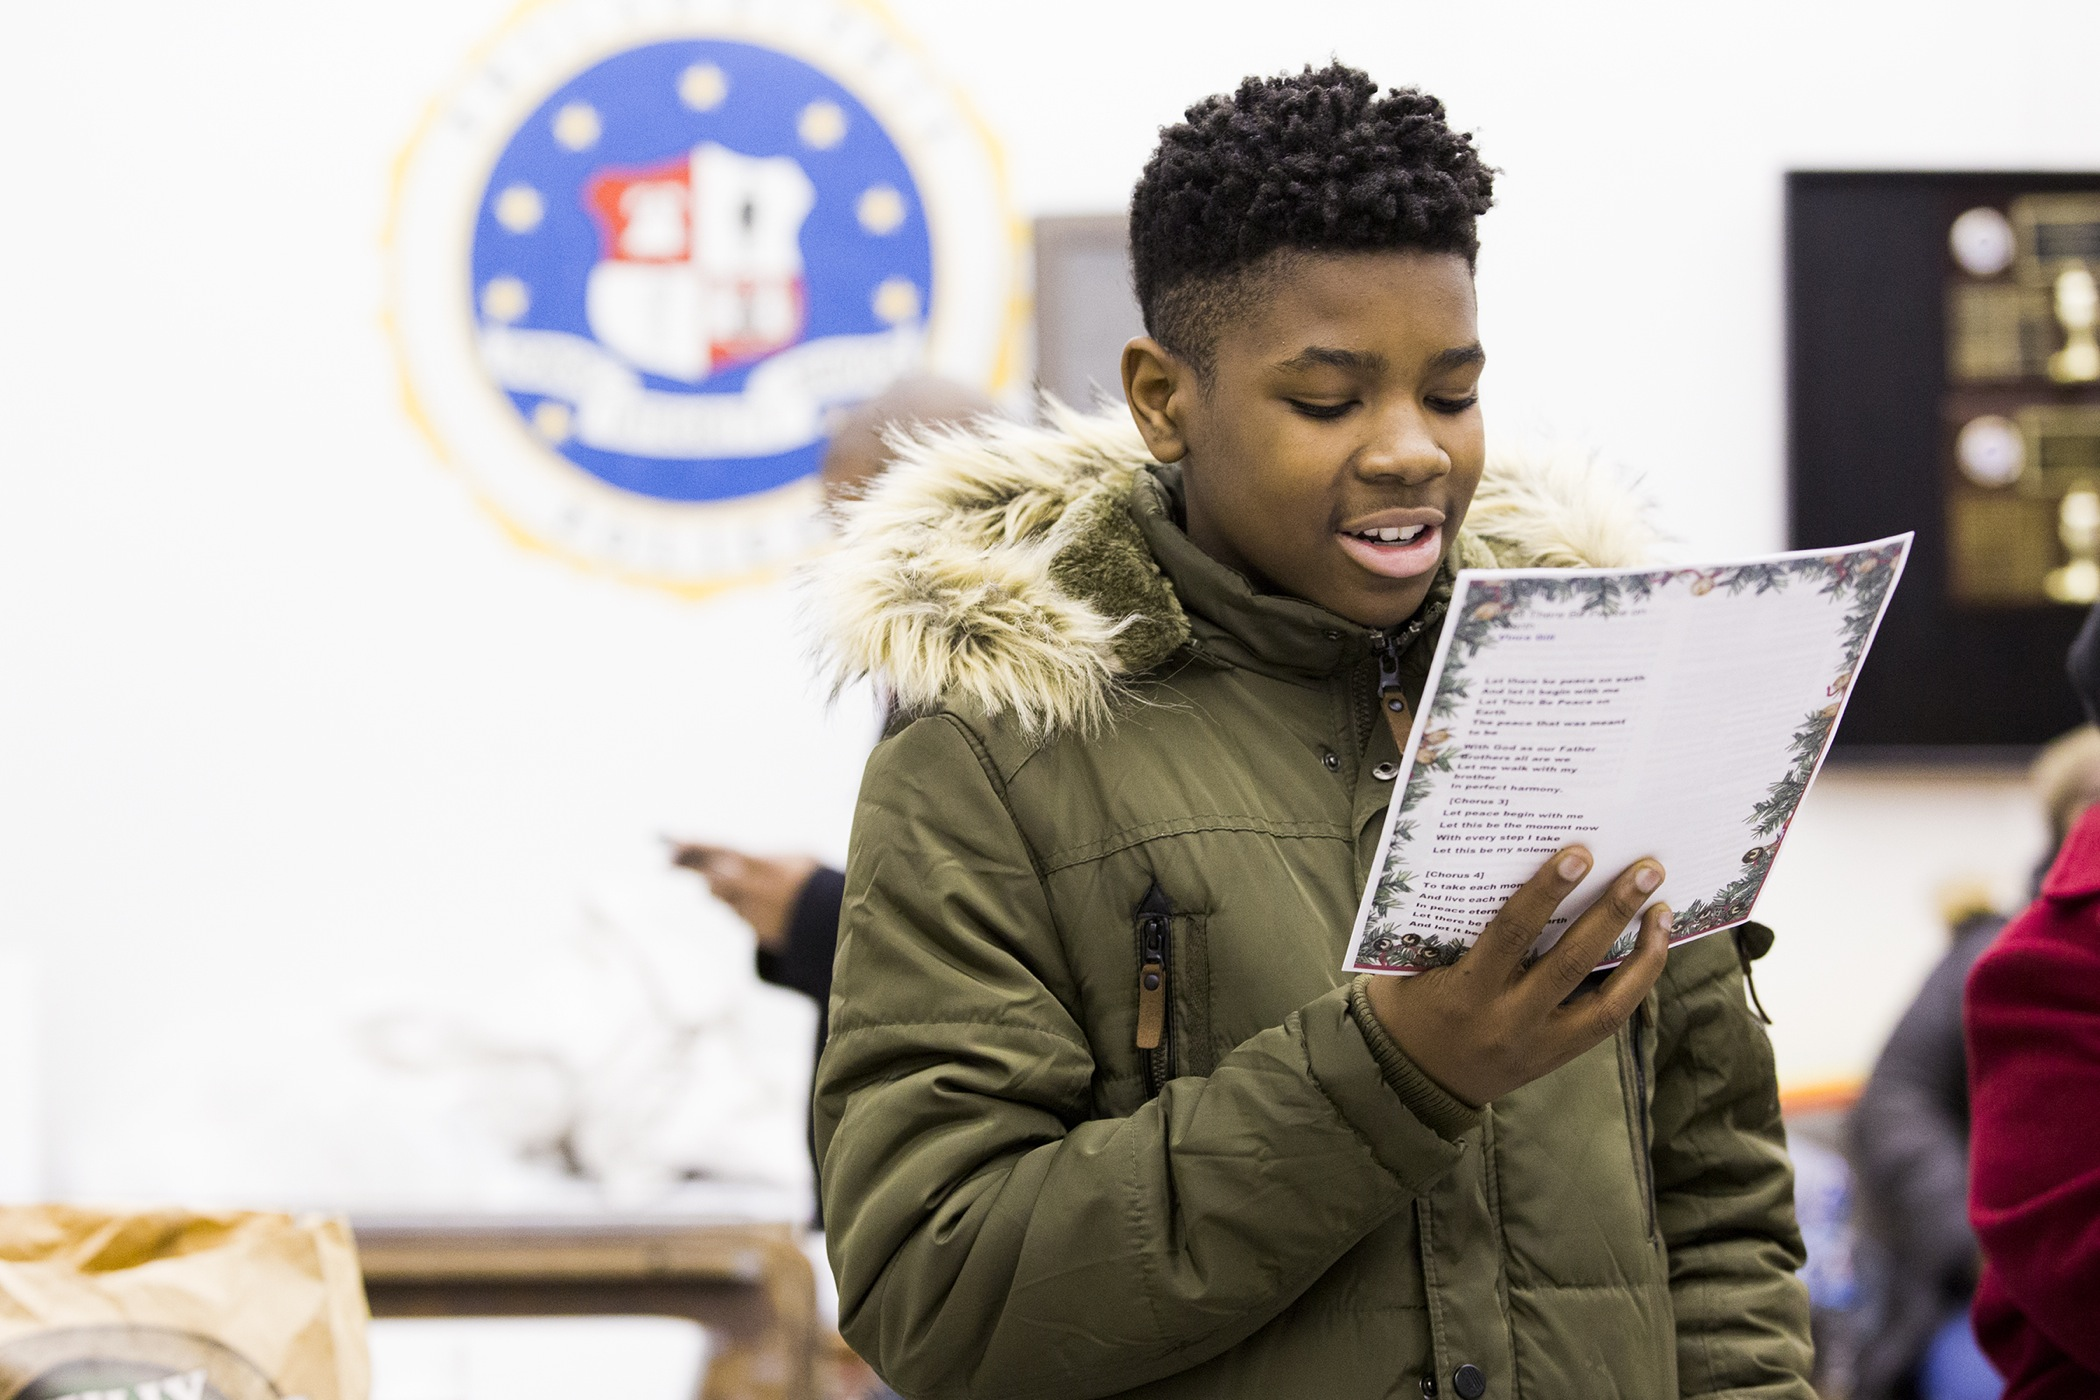 Despite being nervous to interact closely with police officers, Zion Nwalipenja, 13, reads a speech he composed in which he thanks the 39th Police District for attending the caroling event on December 7.